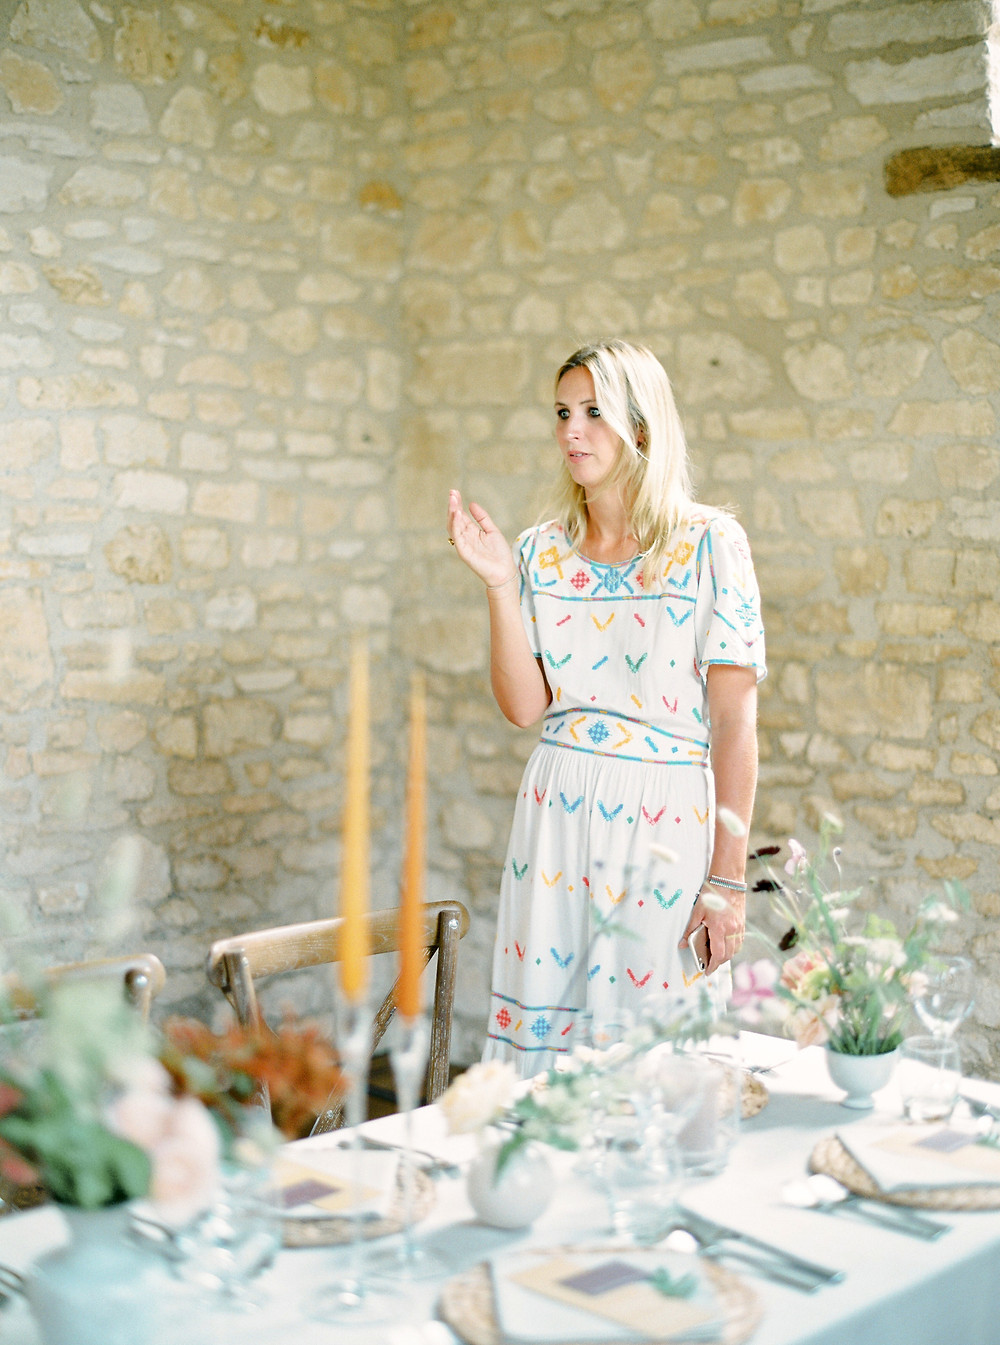 JESSIE WESTWOOD TOP UK WEDDING PLANNER